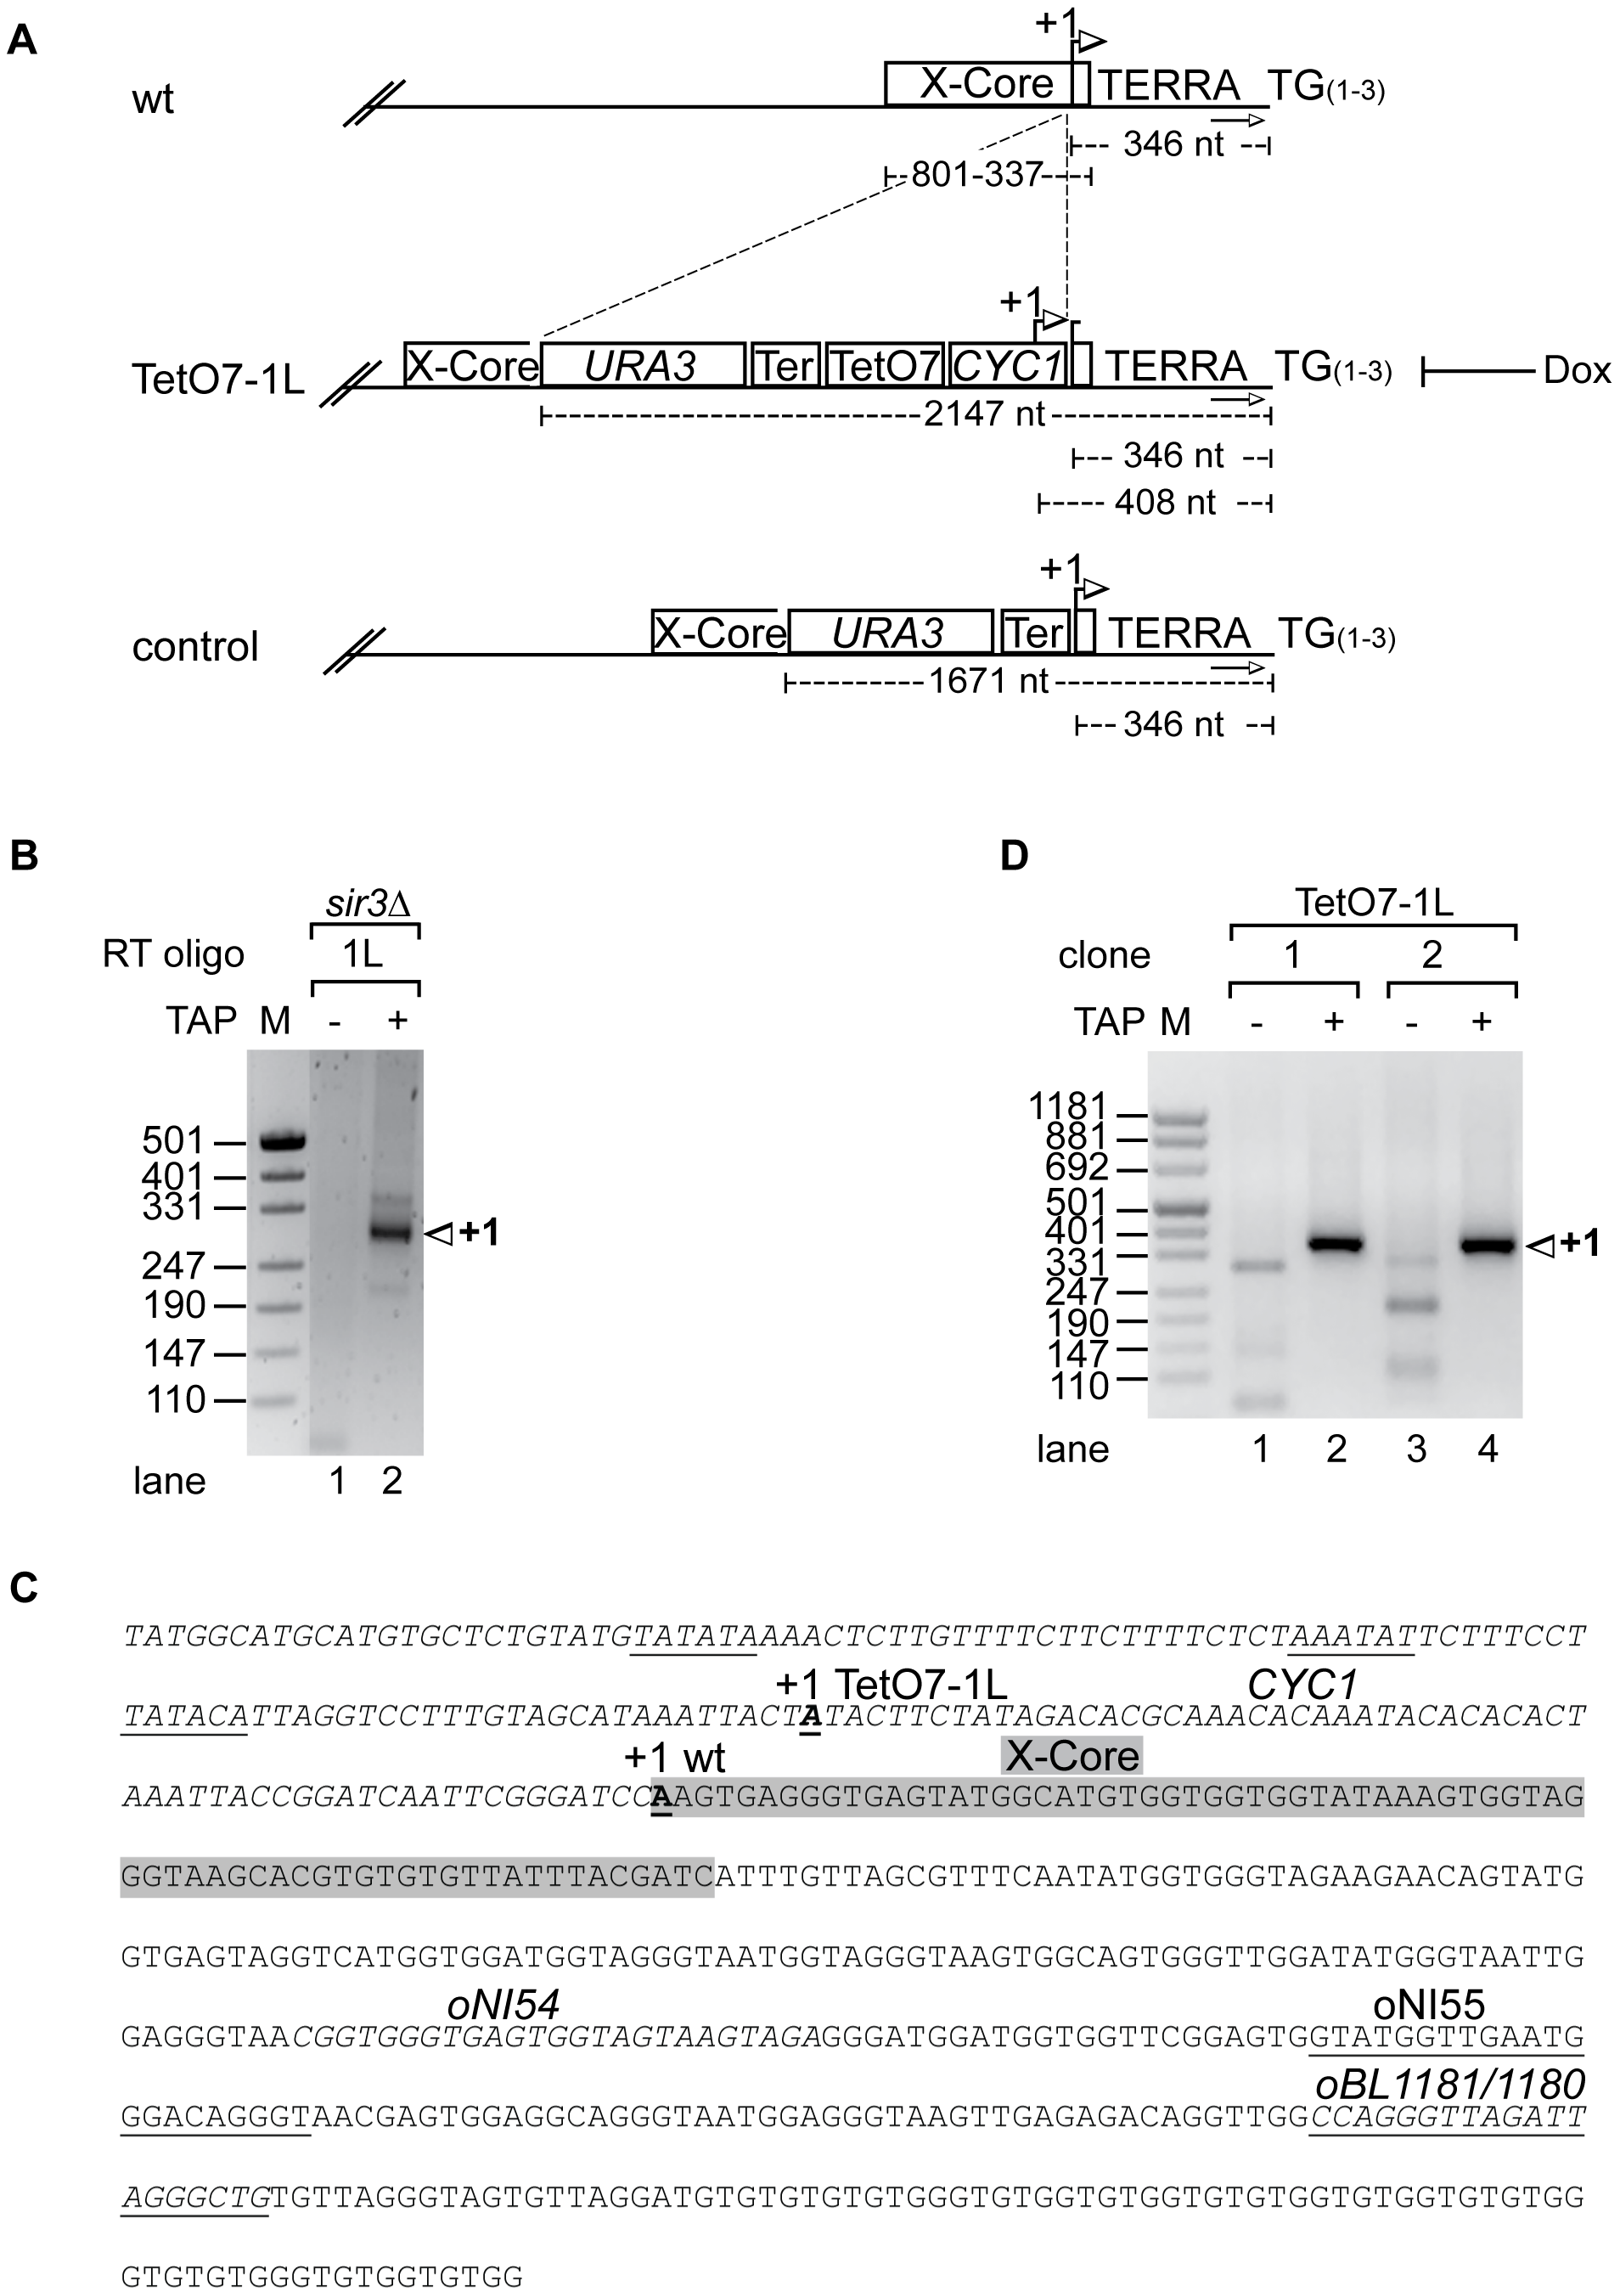 Development of an inducible 1L TERRA expression system.